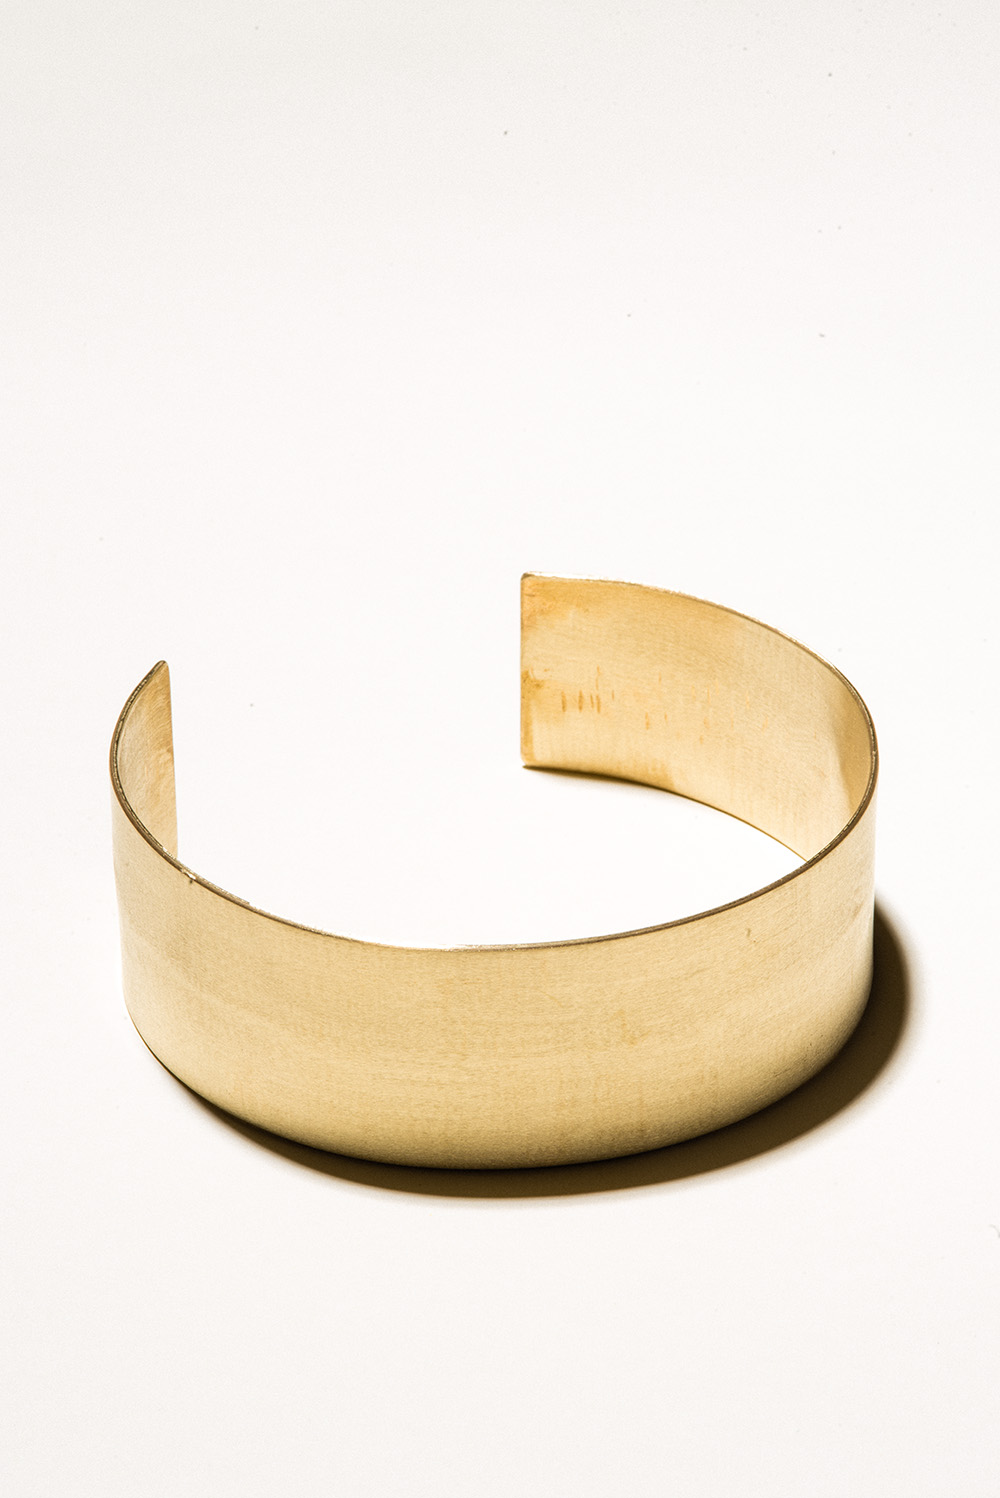 40 Brass Collar - 40mm wideJewelers Brass with Lacquer FinishHand Smithed$200